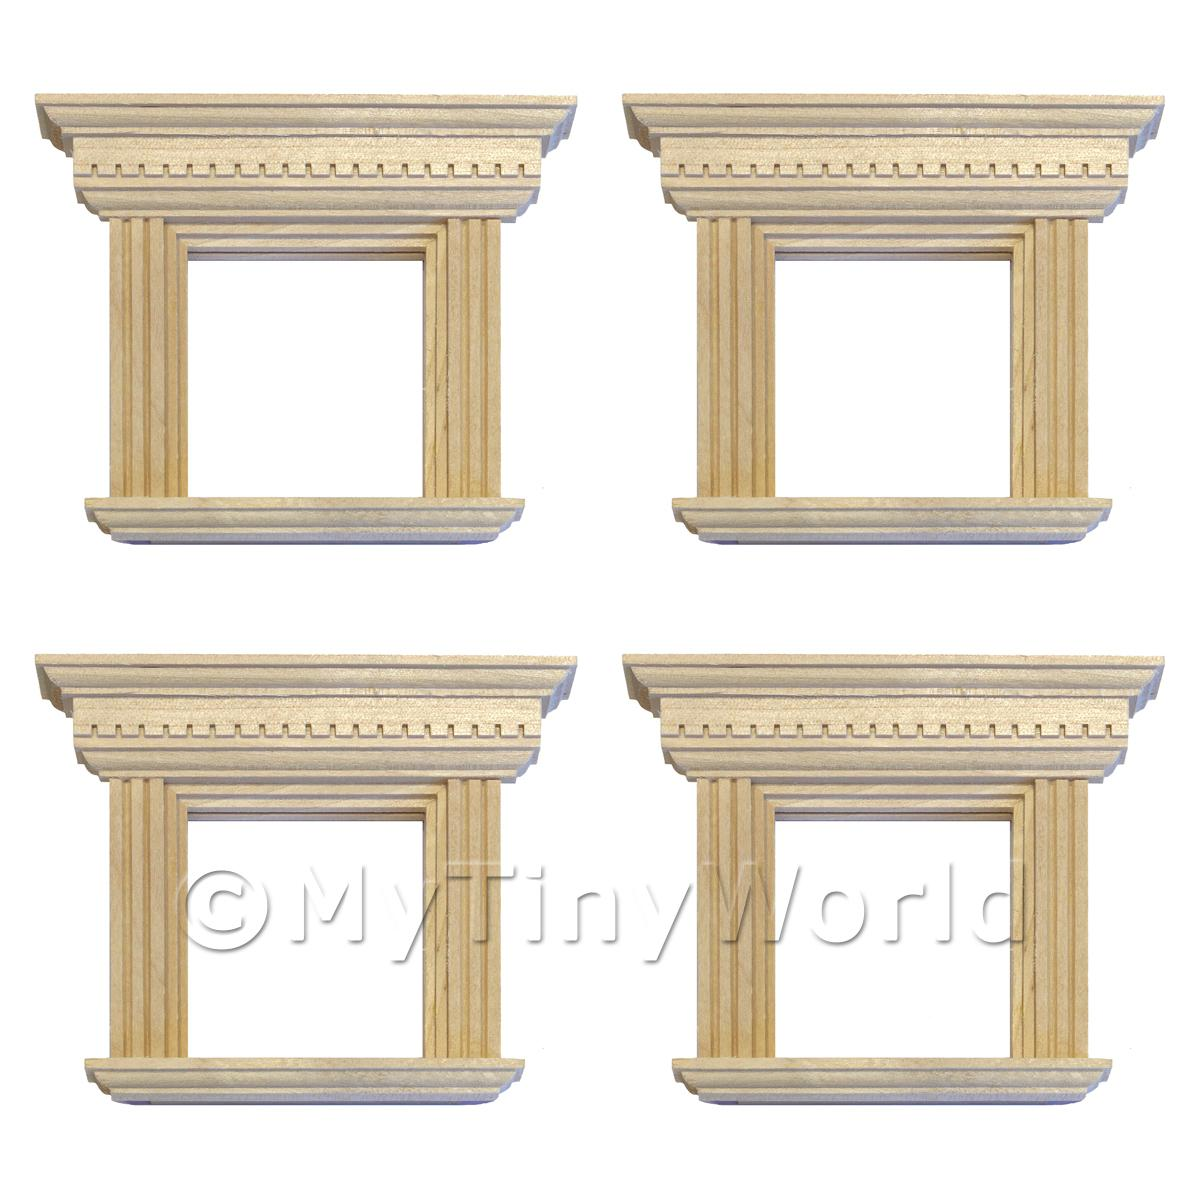 Dolls House Miniature  | 4 x Dolls House Square Wood Window With Decorative Frame